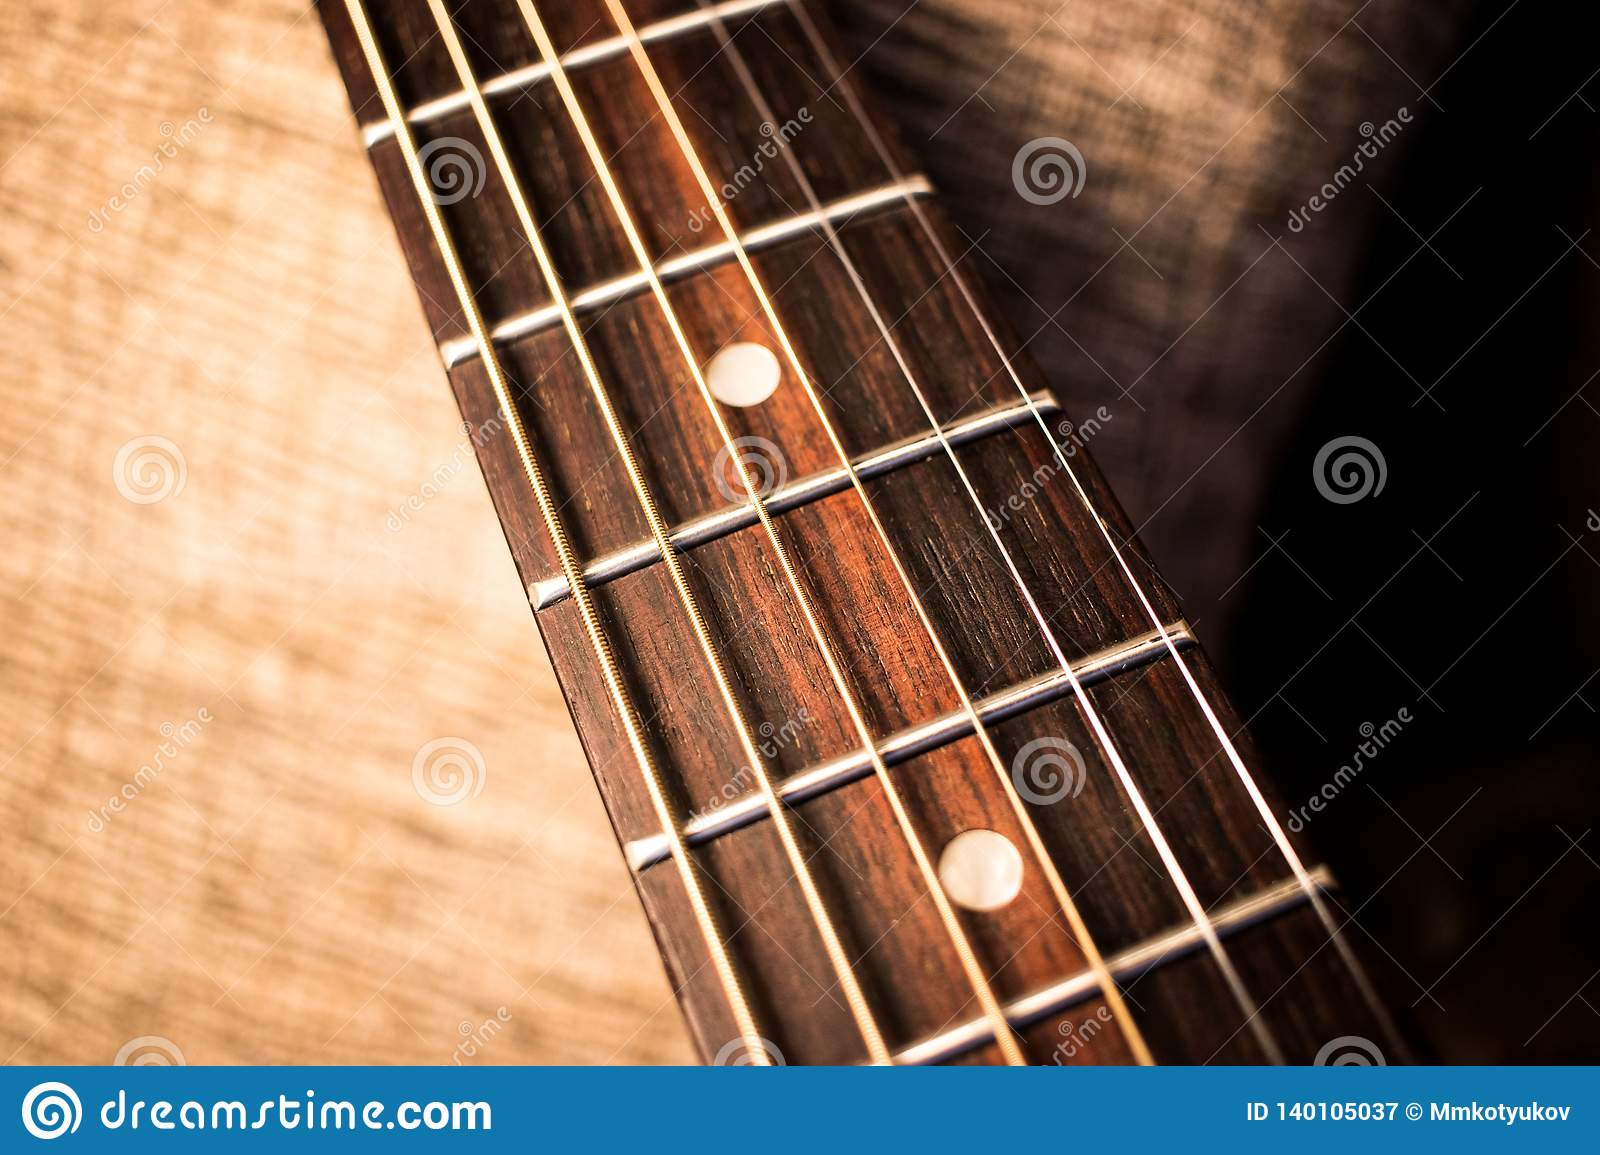 Acoustic guitar neck abstract